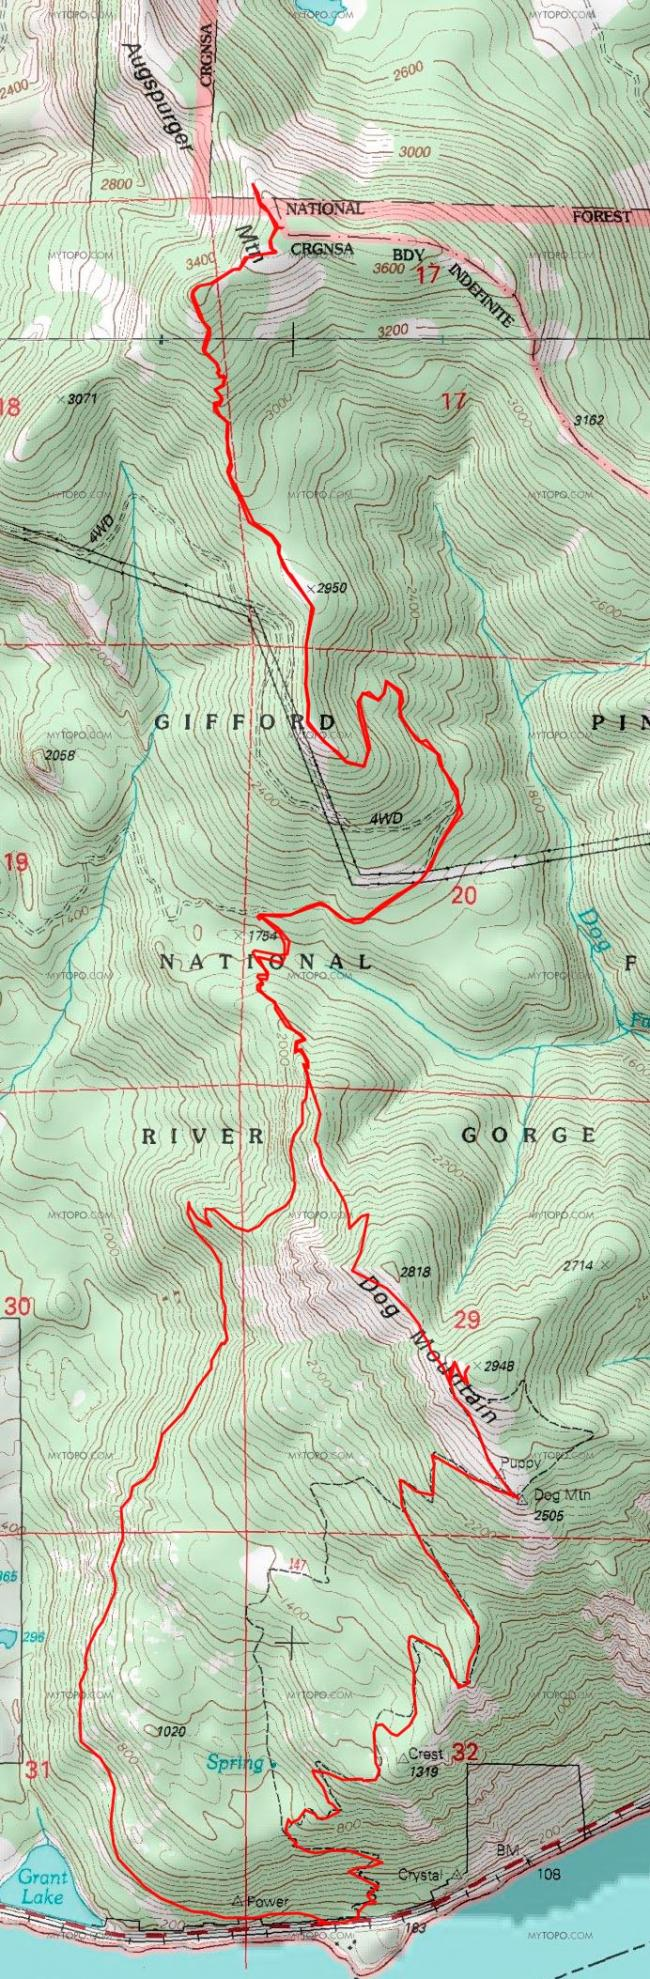 Augspurger Mtn Map - note Dog Mountain Trail is included